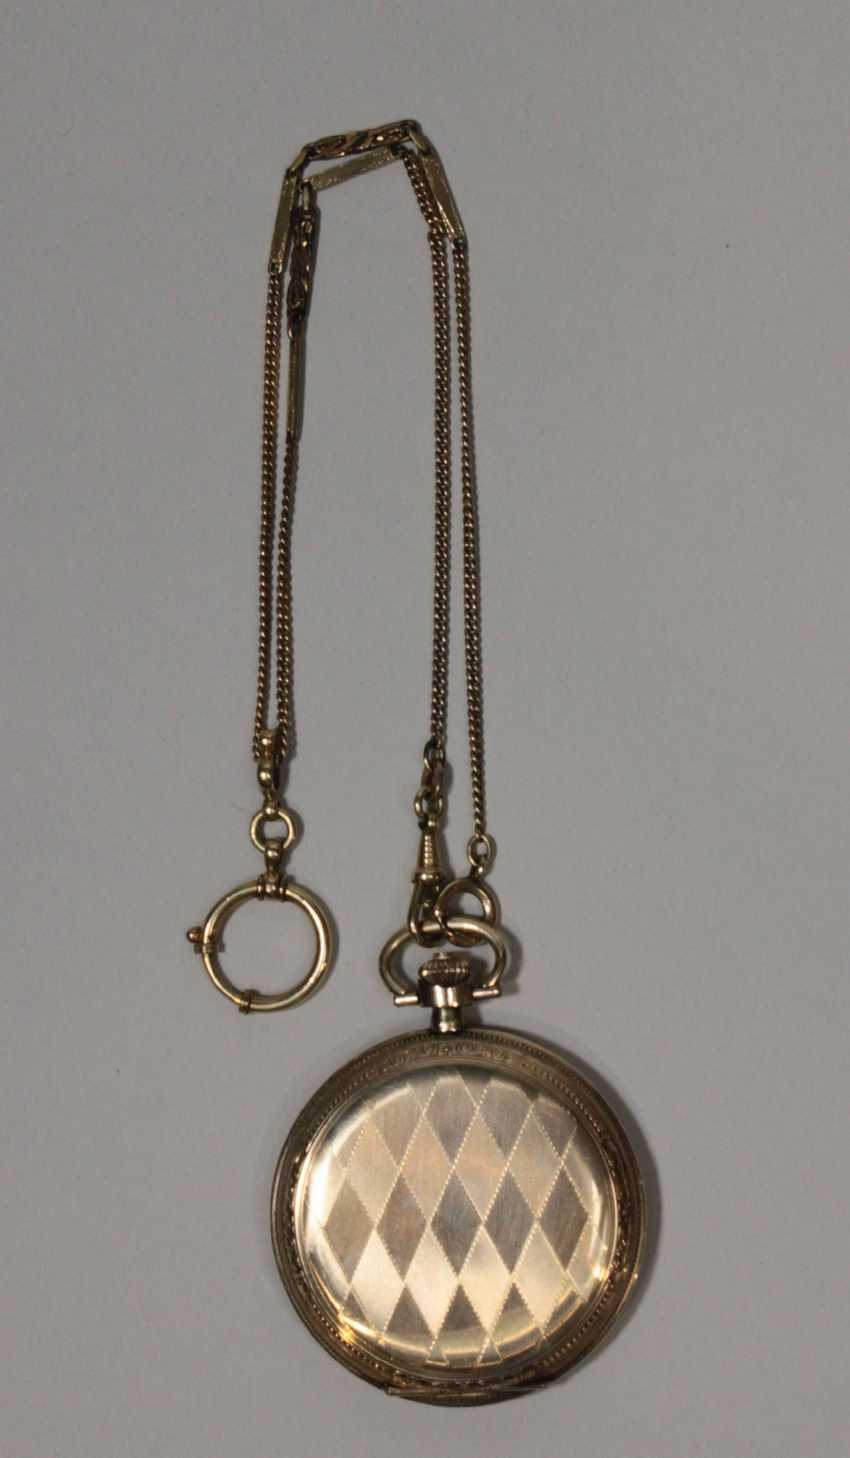 Pocket watch with chain - photo 3